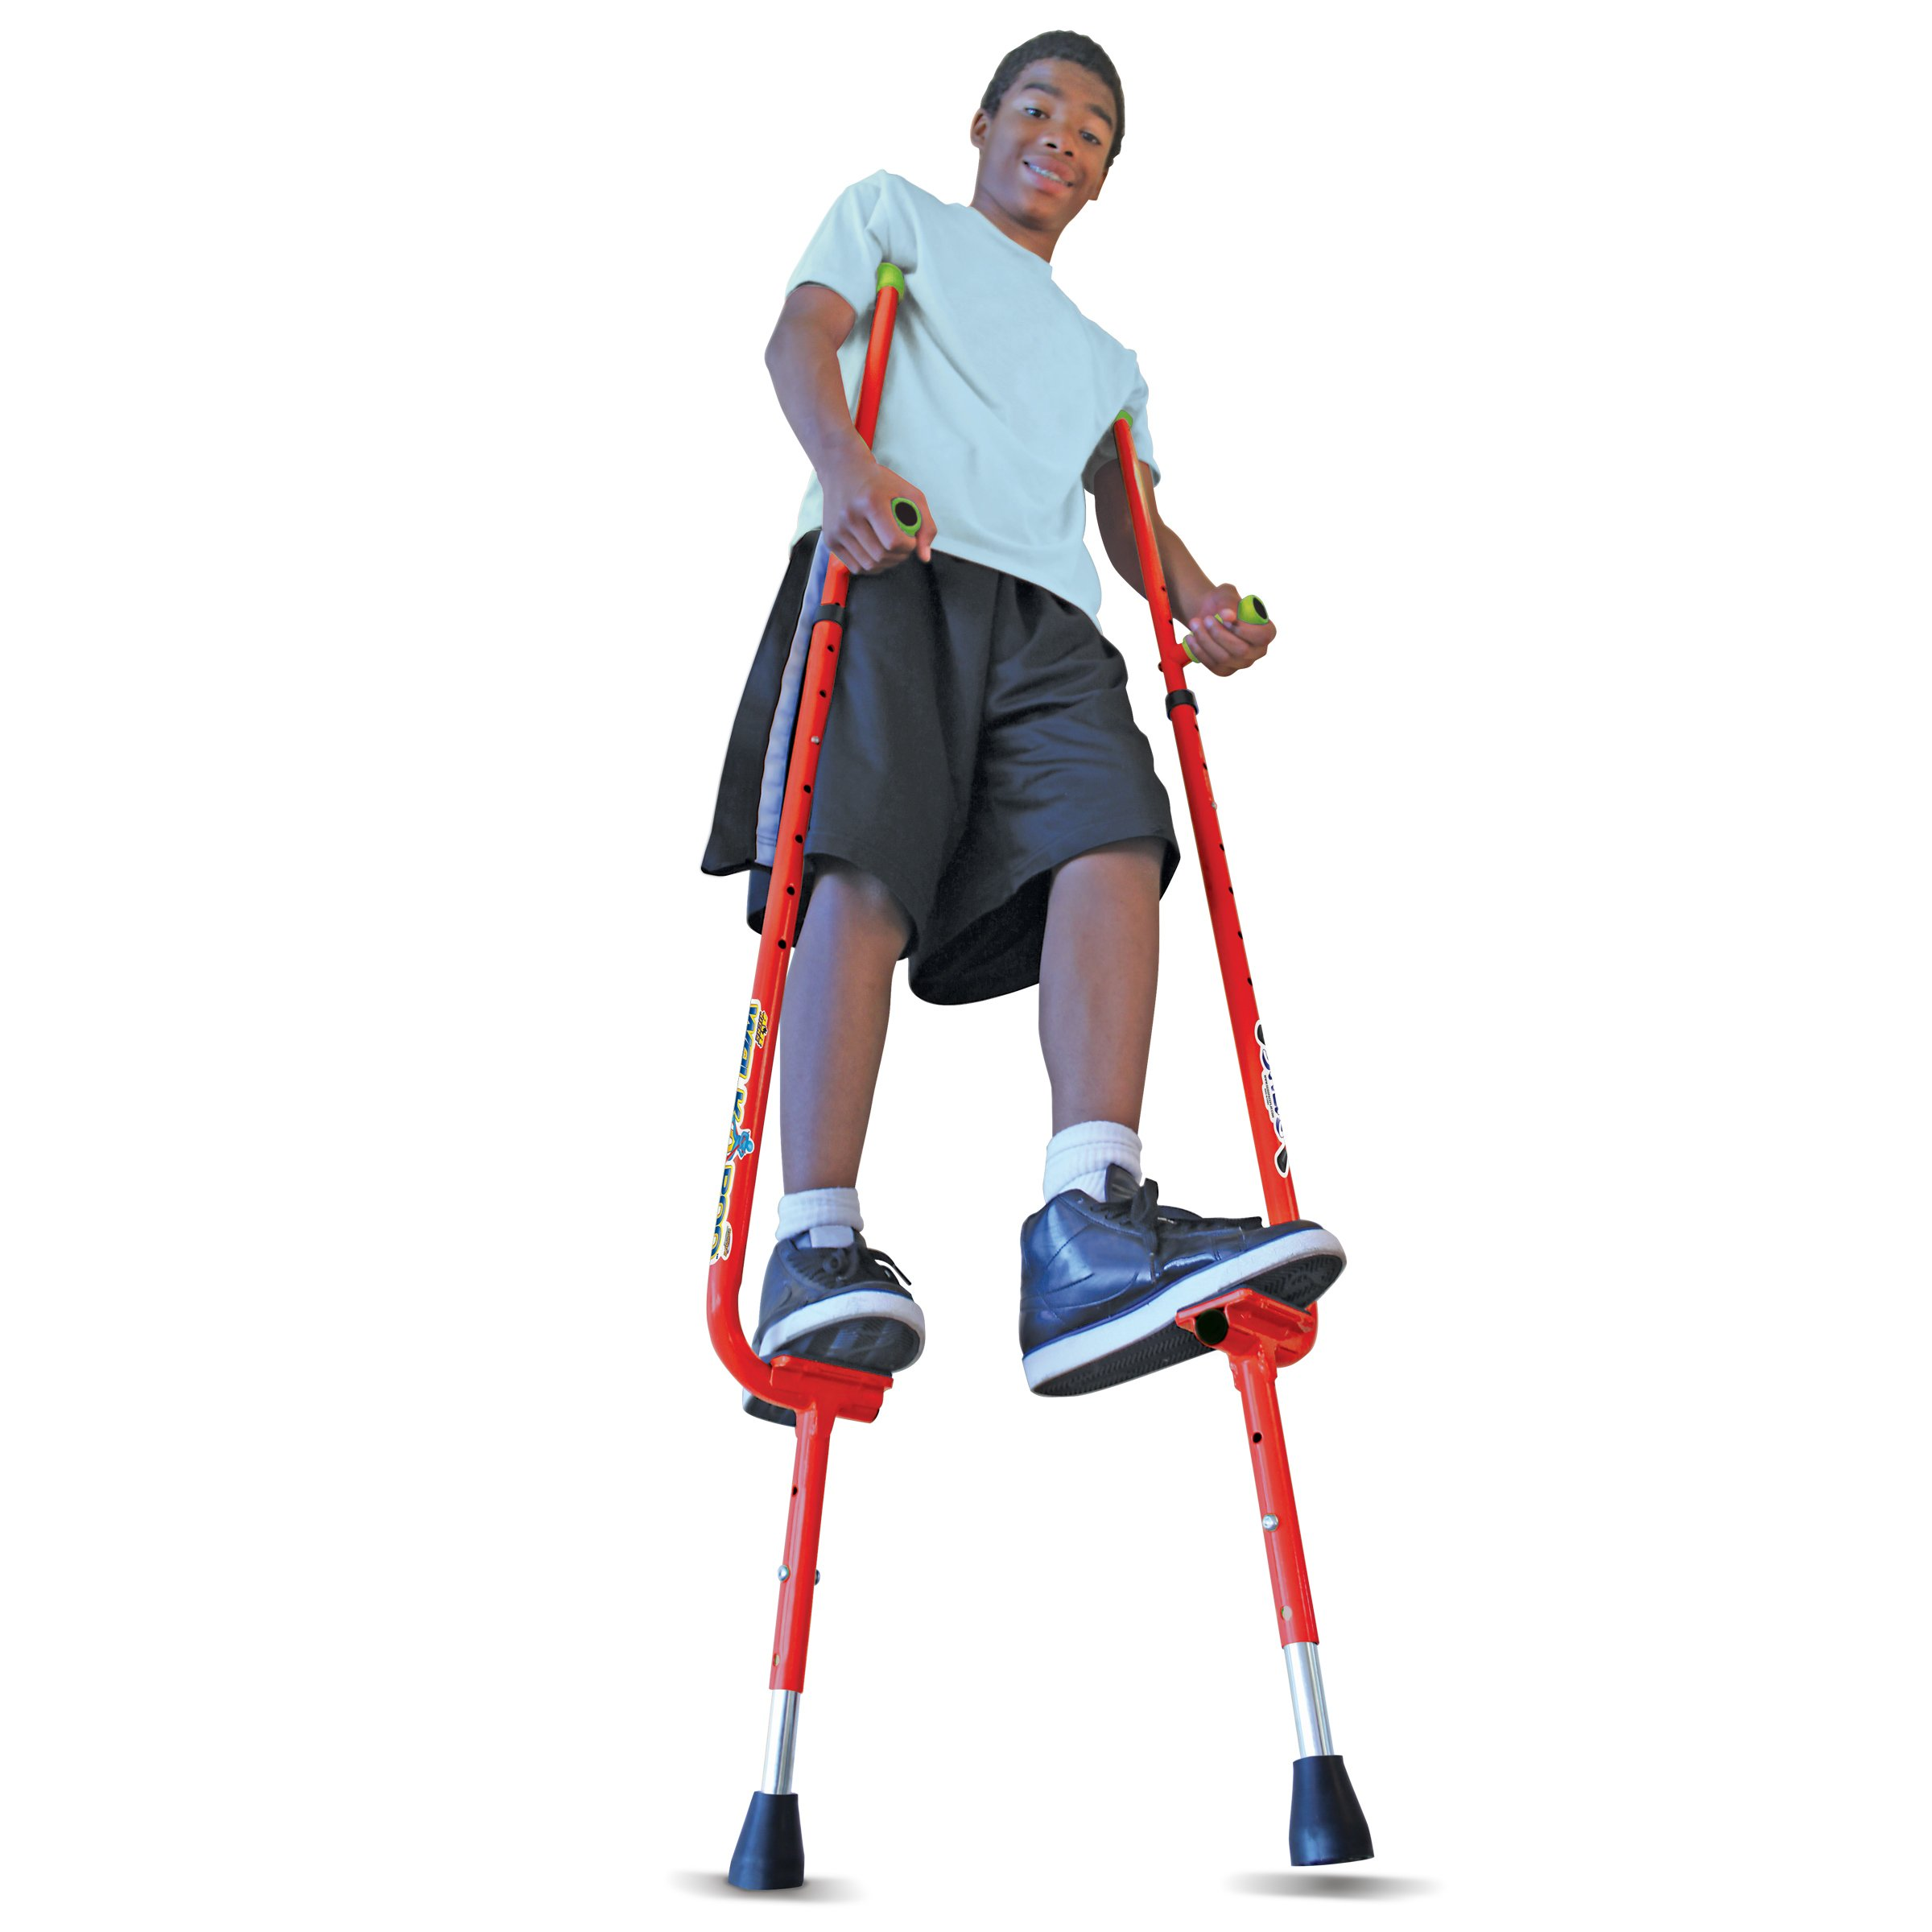 Geospace Original Walkaroo Xtreme Steel Balance Stilts with Height Adjustable Vert Lifters by Air Kicks, RED by Geospace